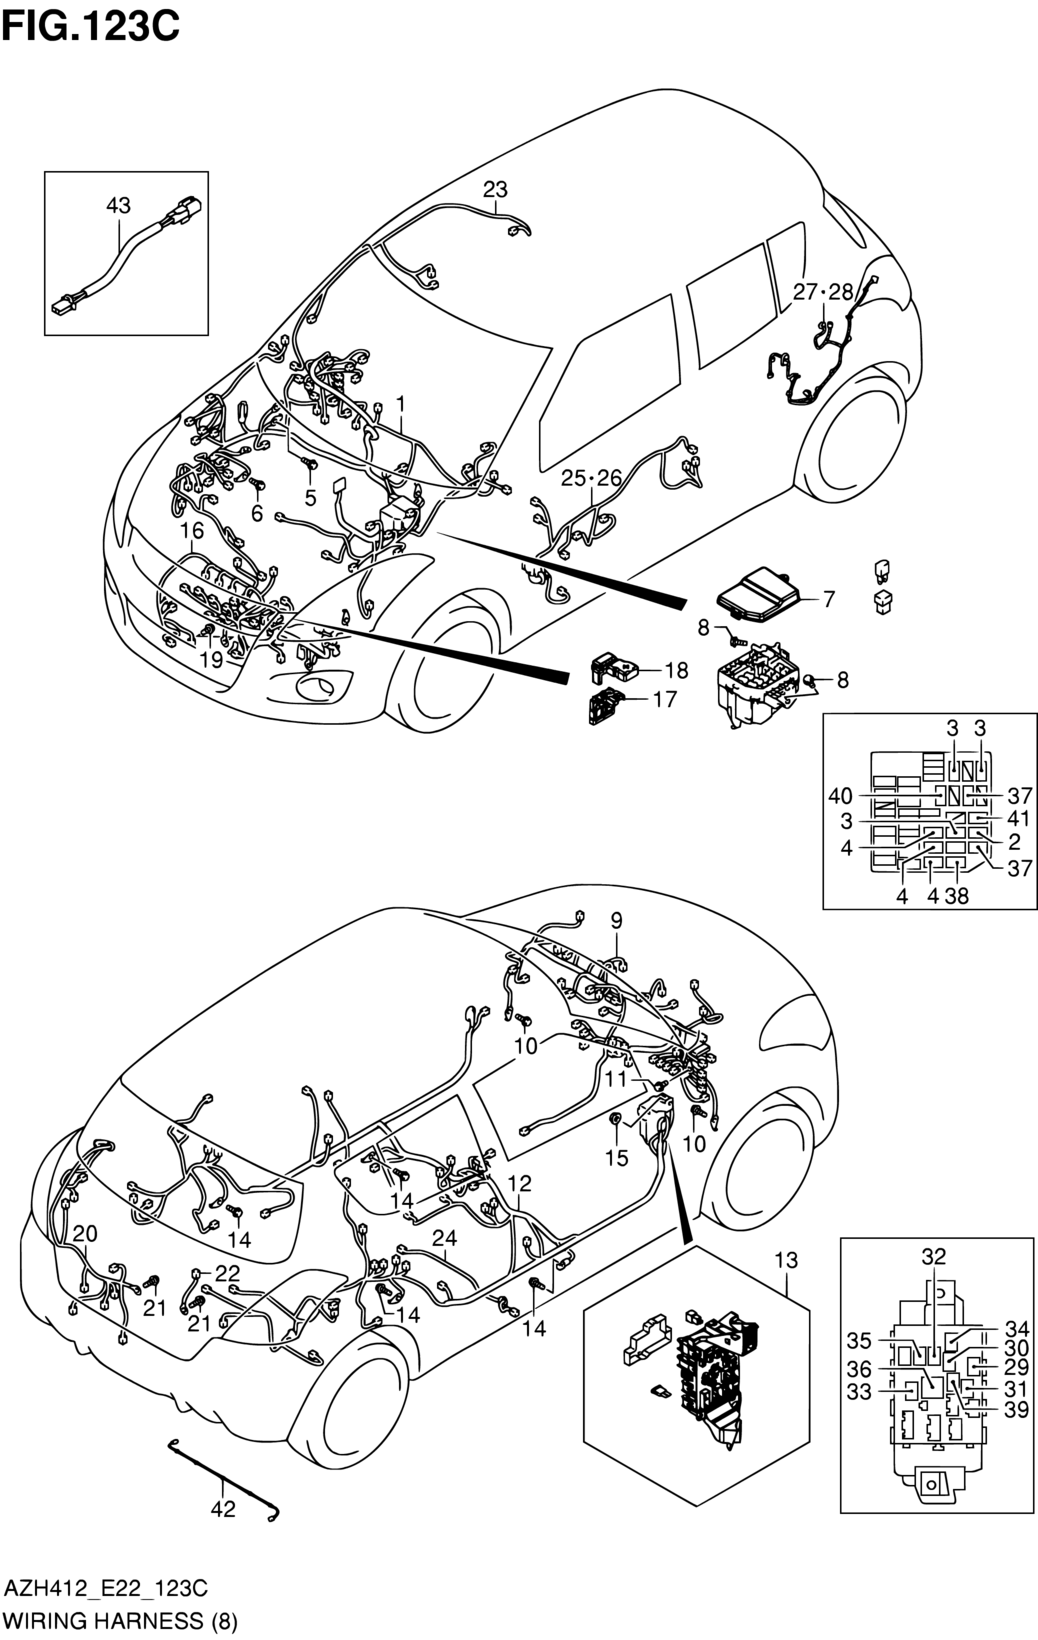 asia swift azh412 e22 e90 electrical 123c wiring harness Farmall Wiring Harness Diagram code part number name additional information qty